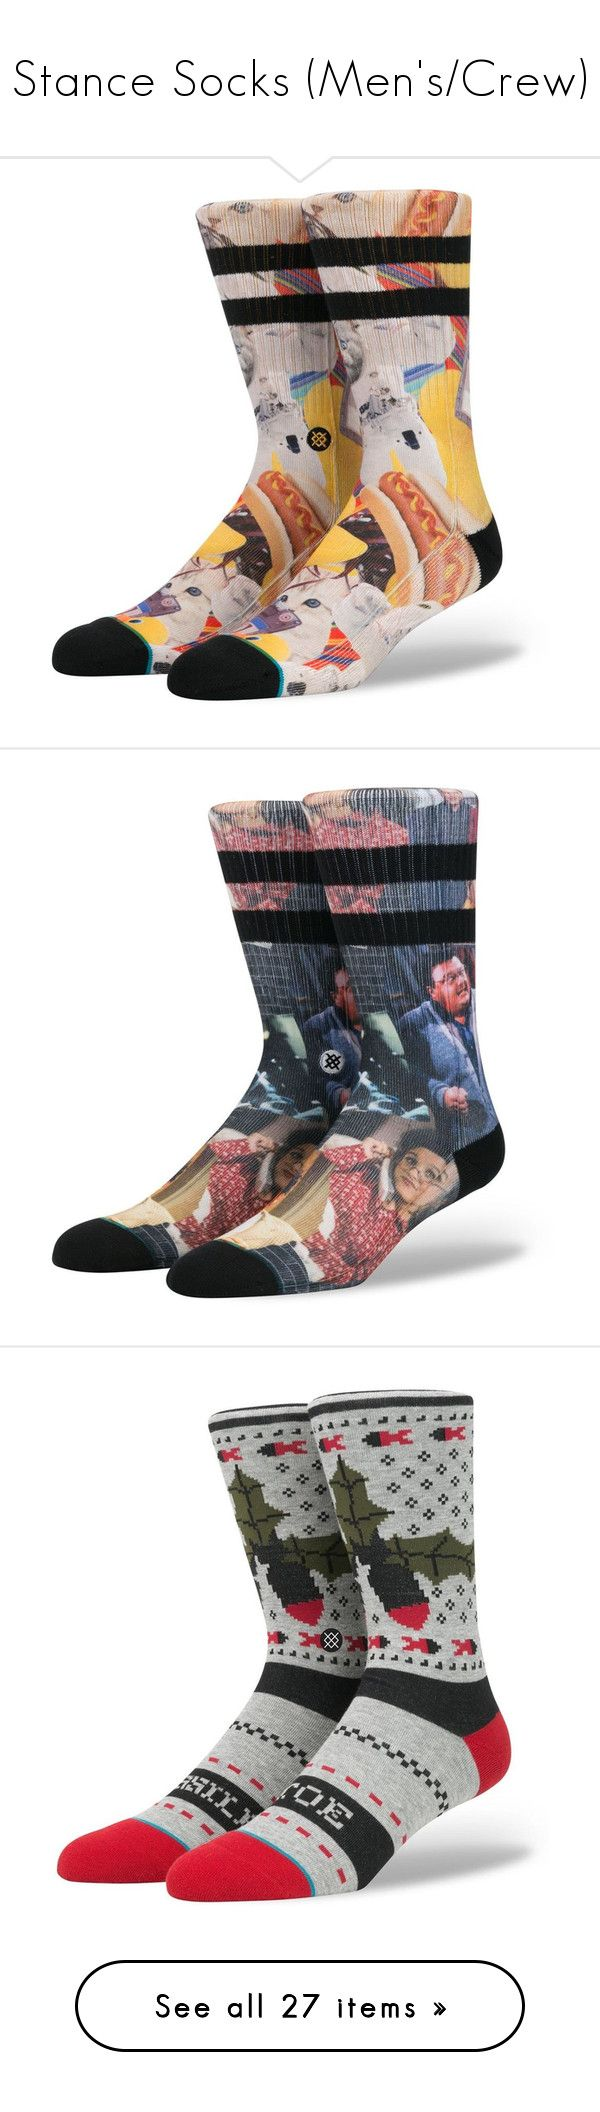 """""""Stance Socks (Men's/Crew)"""" by x-wear ❤ liked on Polyvore featuring men's fashion, men's clothing, men's socks, mens socks, mens navy blue crew socks, mens navy blue socks, mens navy crew socks, mens navy socks, mens wool socks and mens woolen socks"""